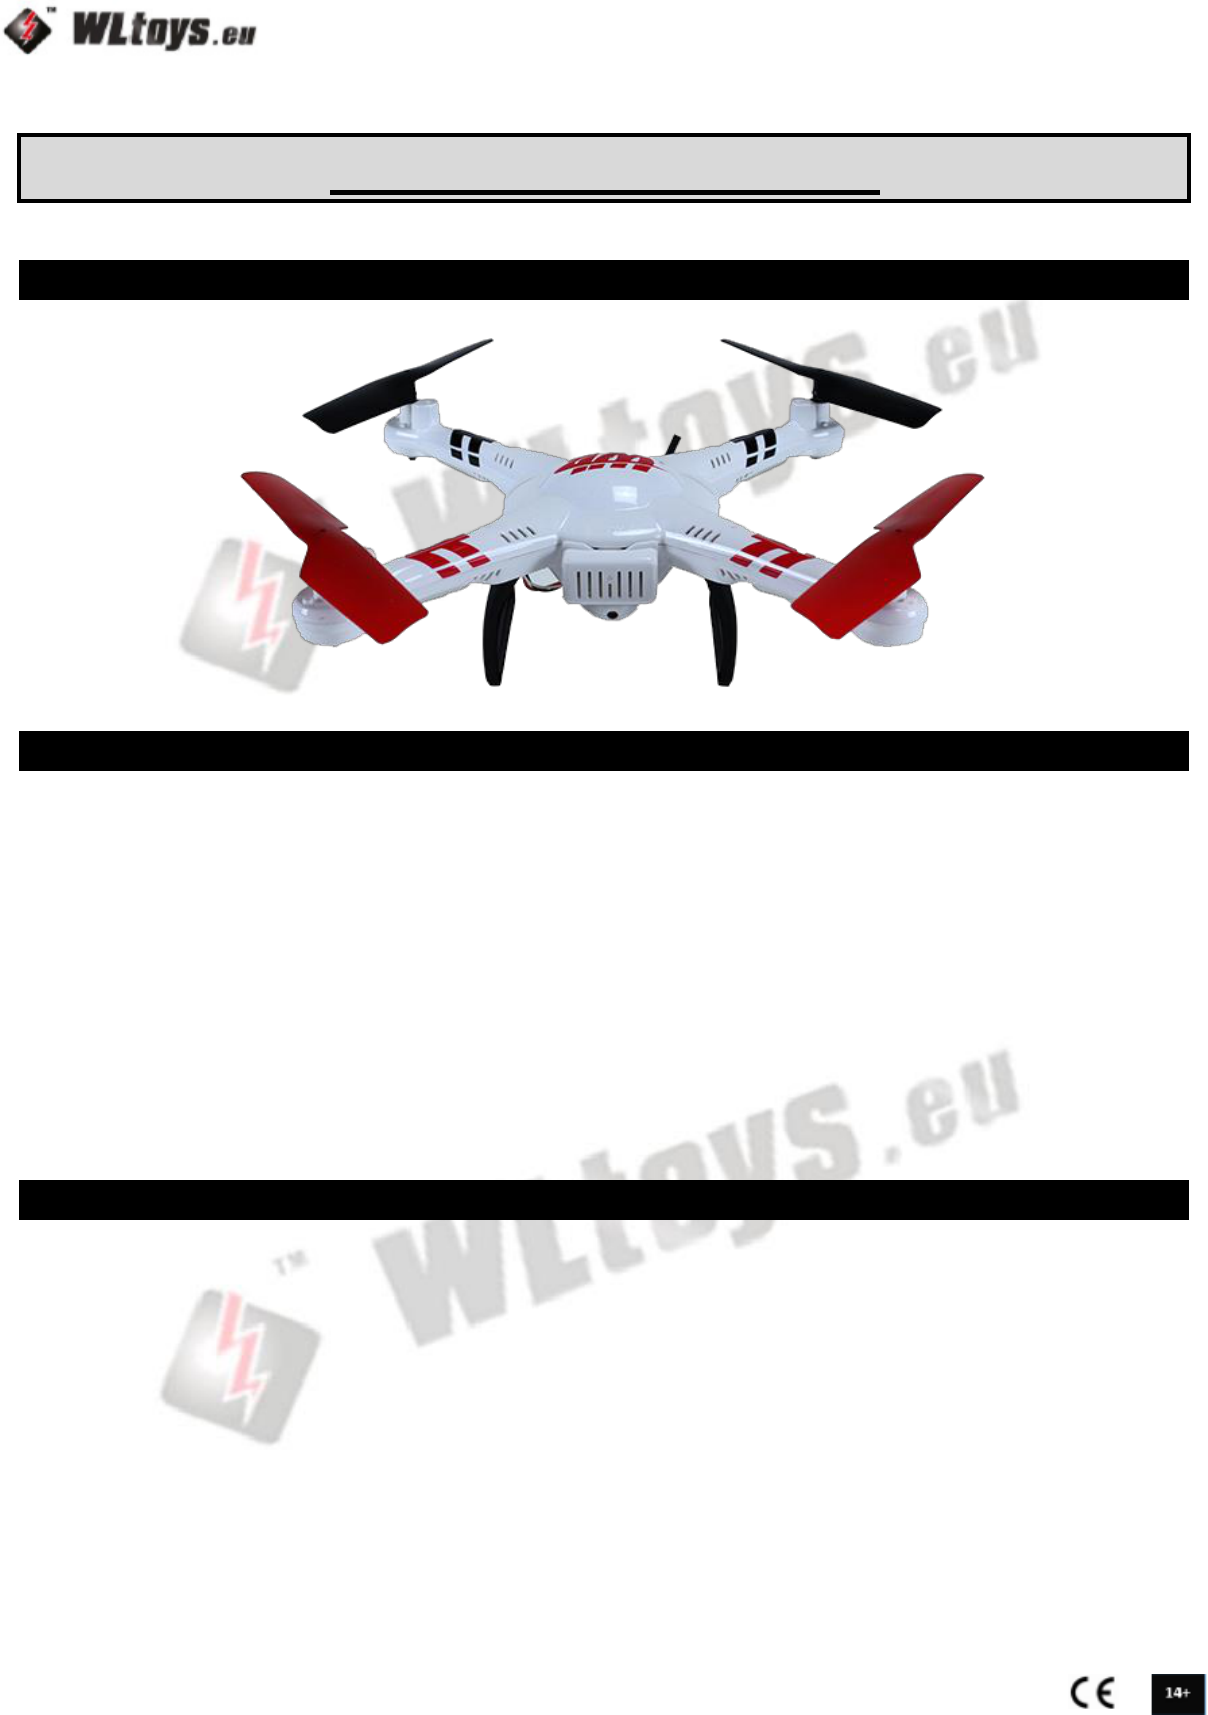 V686g Quadcopter Wiring Diagram Electrical Diagrams Quadrotor Handleiding Wltoys Explore Fpv Pagina 1 Van 10 3 Way Switches